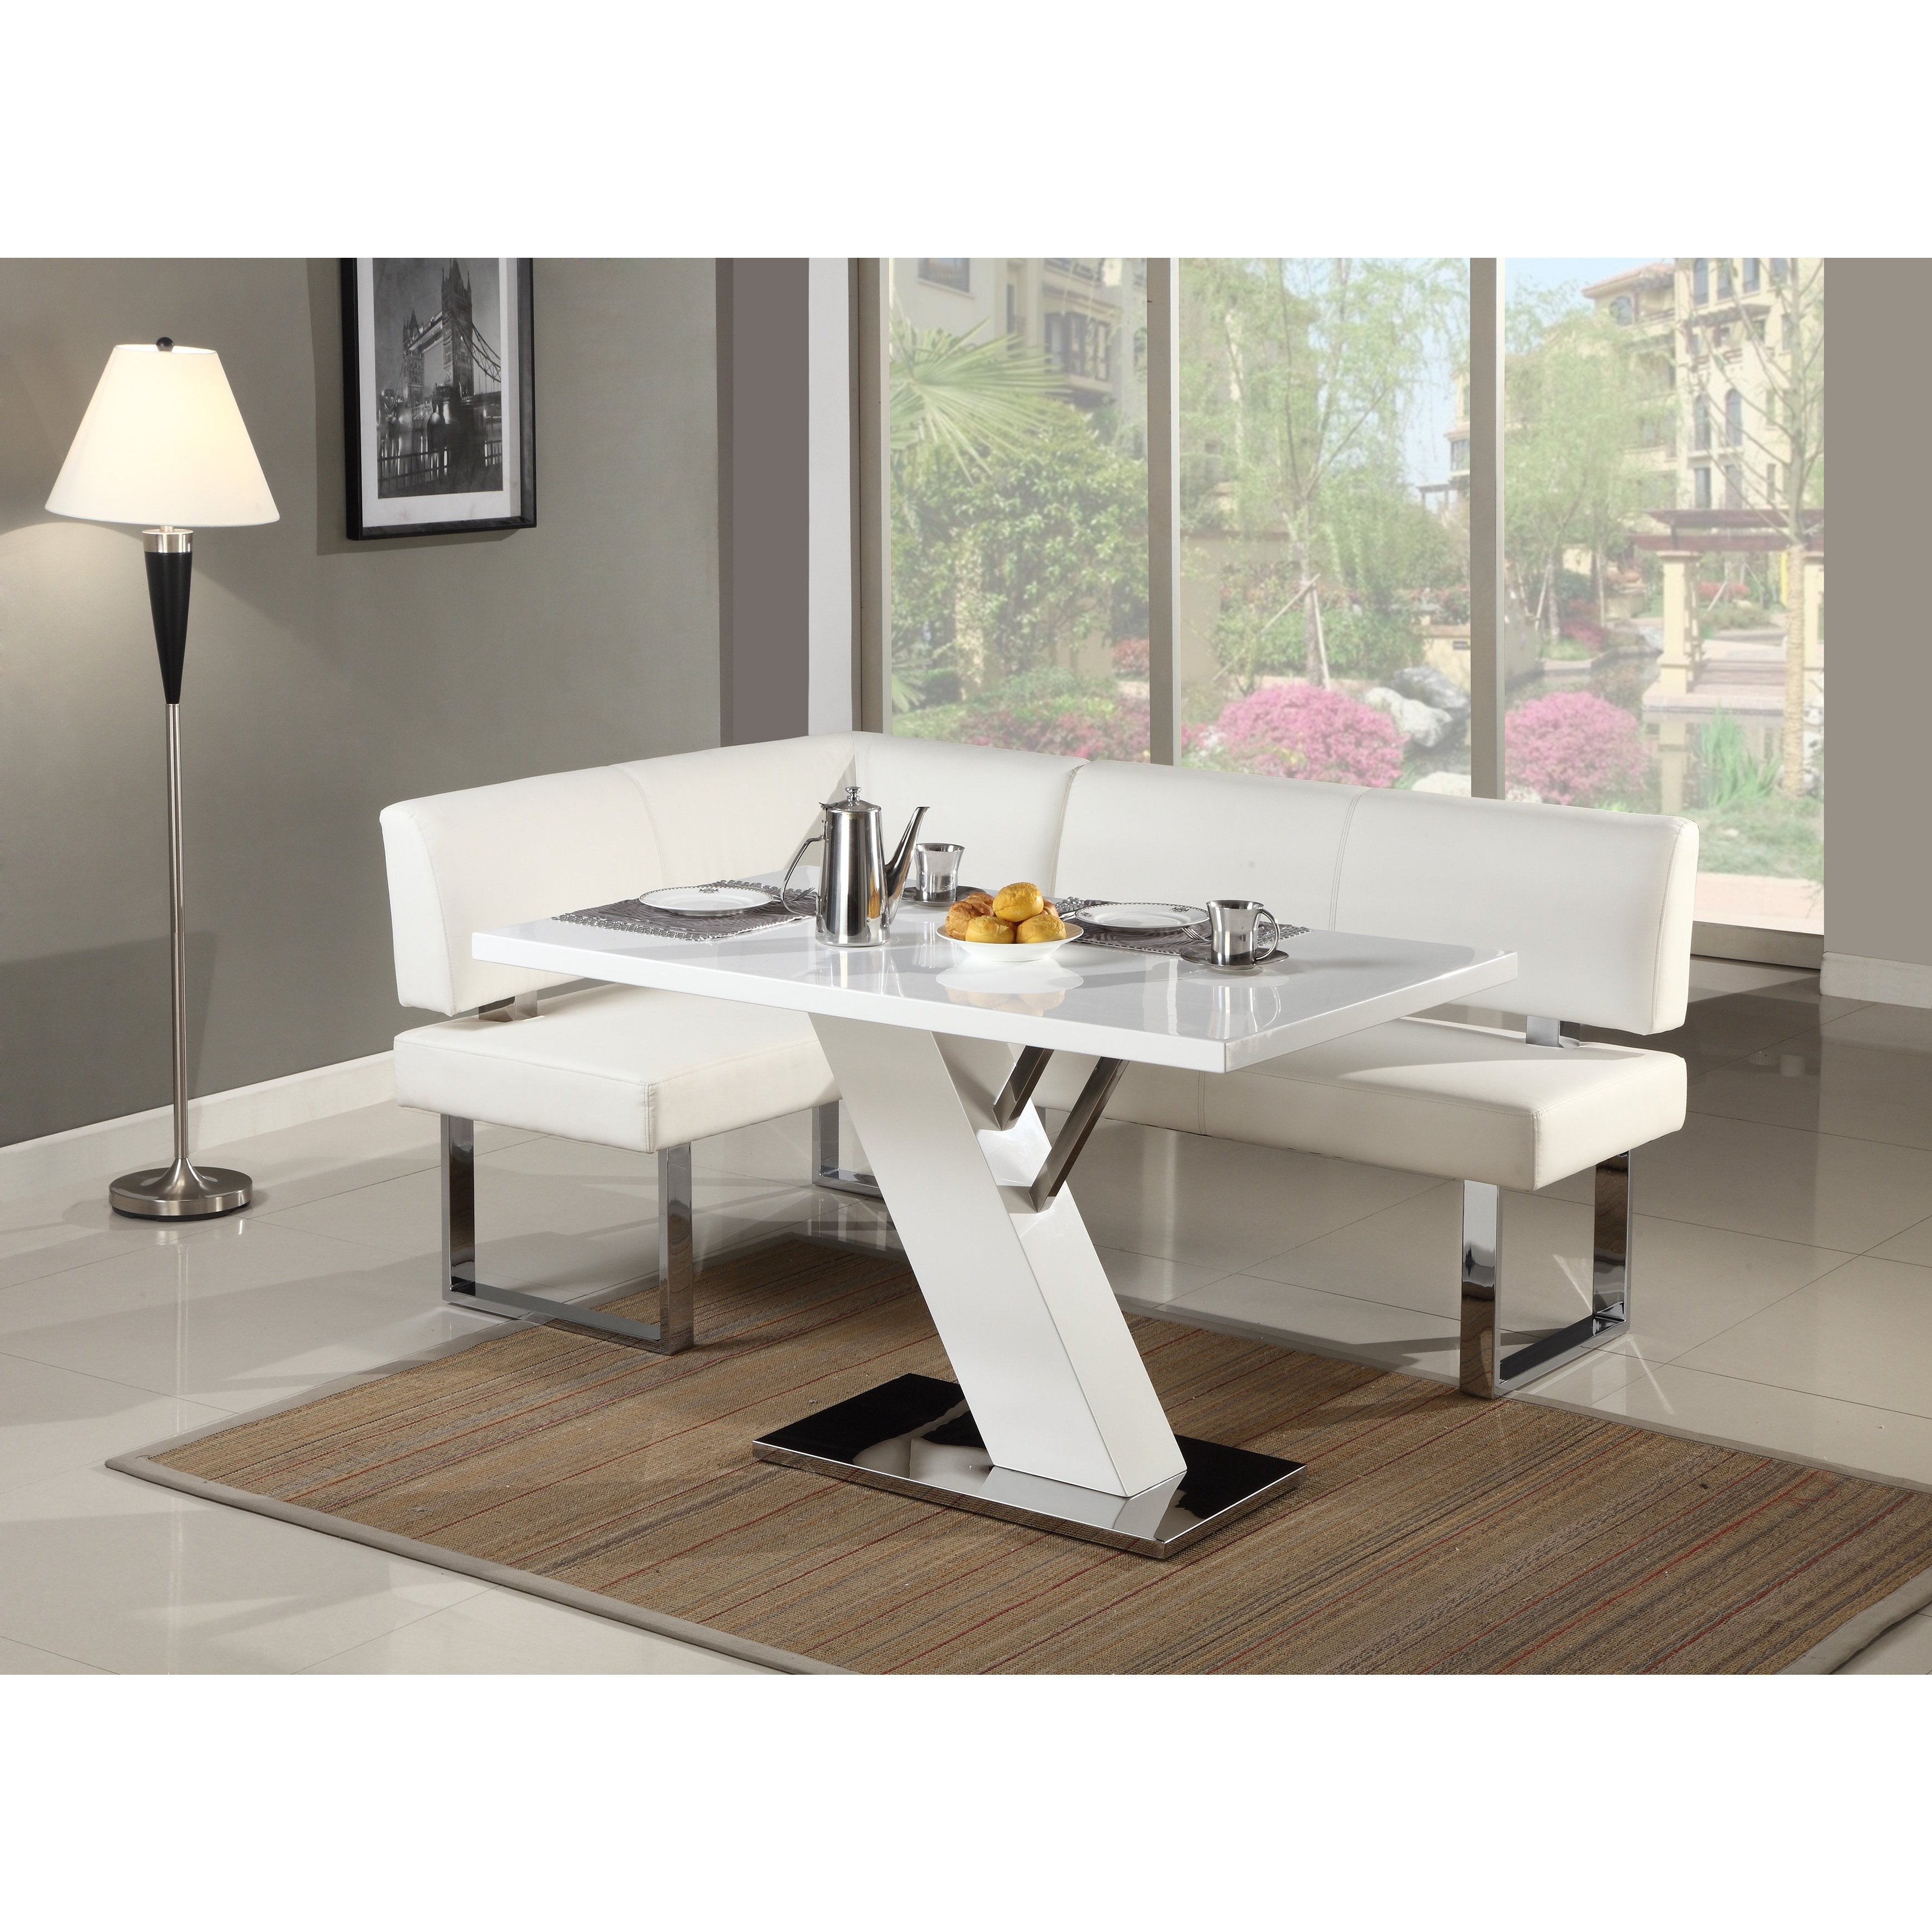 Gloss White Dining Tables For Fashionable Shop Christopher Knight Home Leah Gloss White/chrome Dining Table (View 5 of 25)